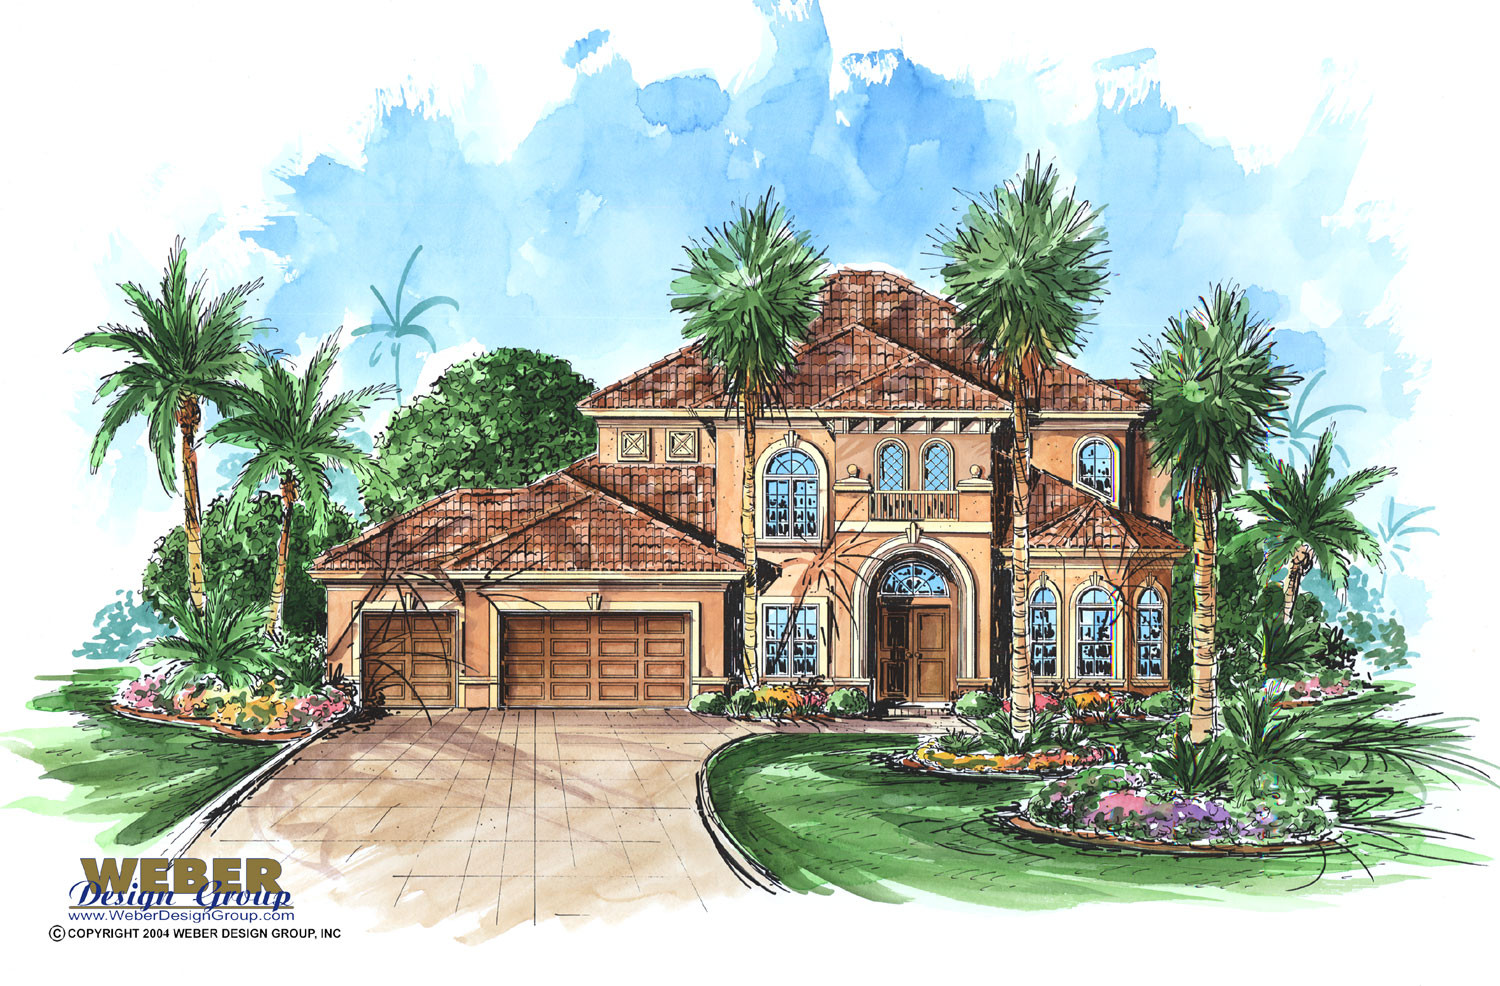 Grand cayman house plan weber design group for Weber house plans